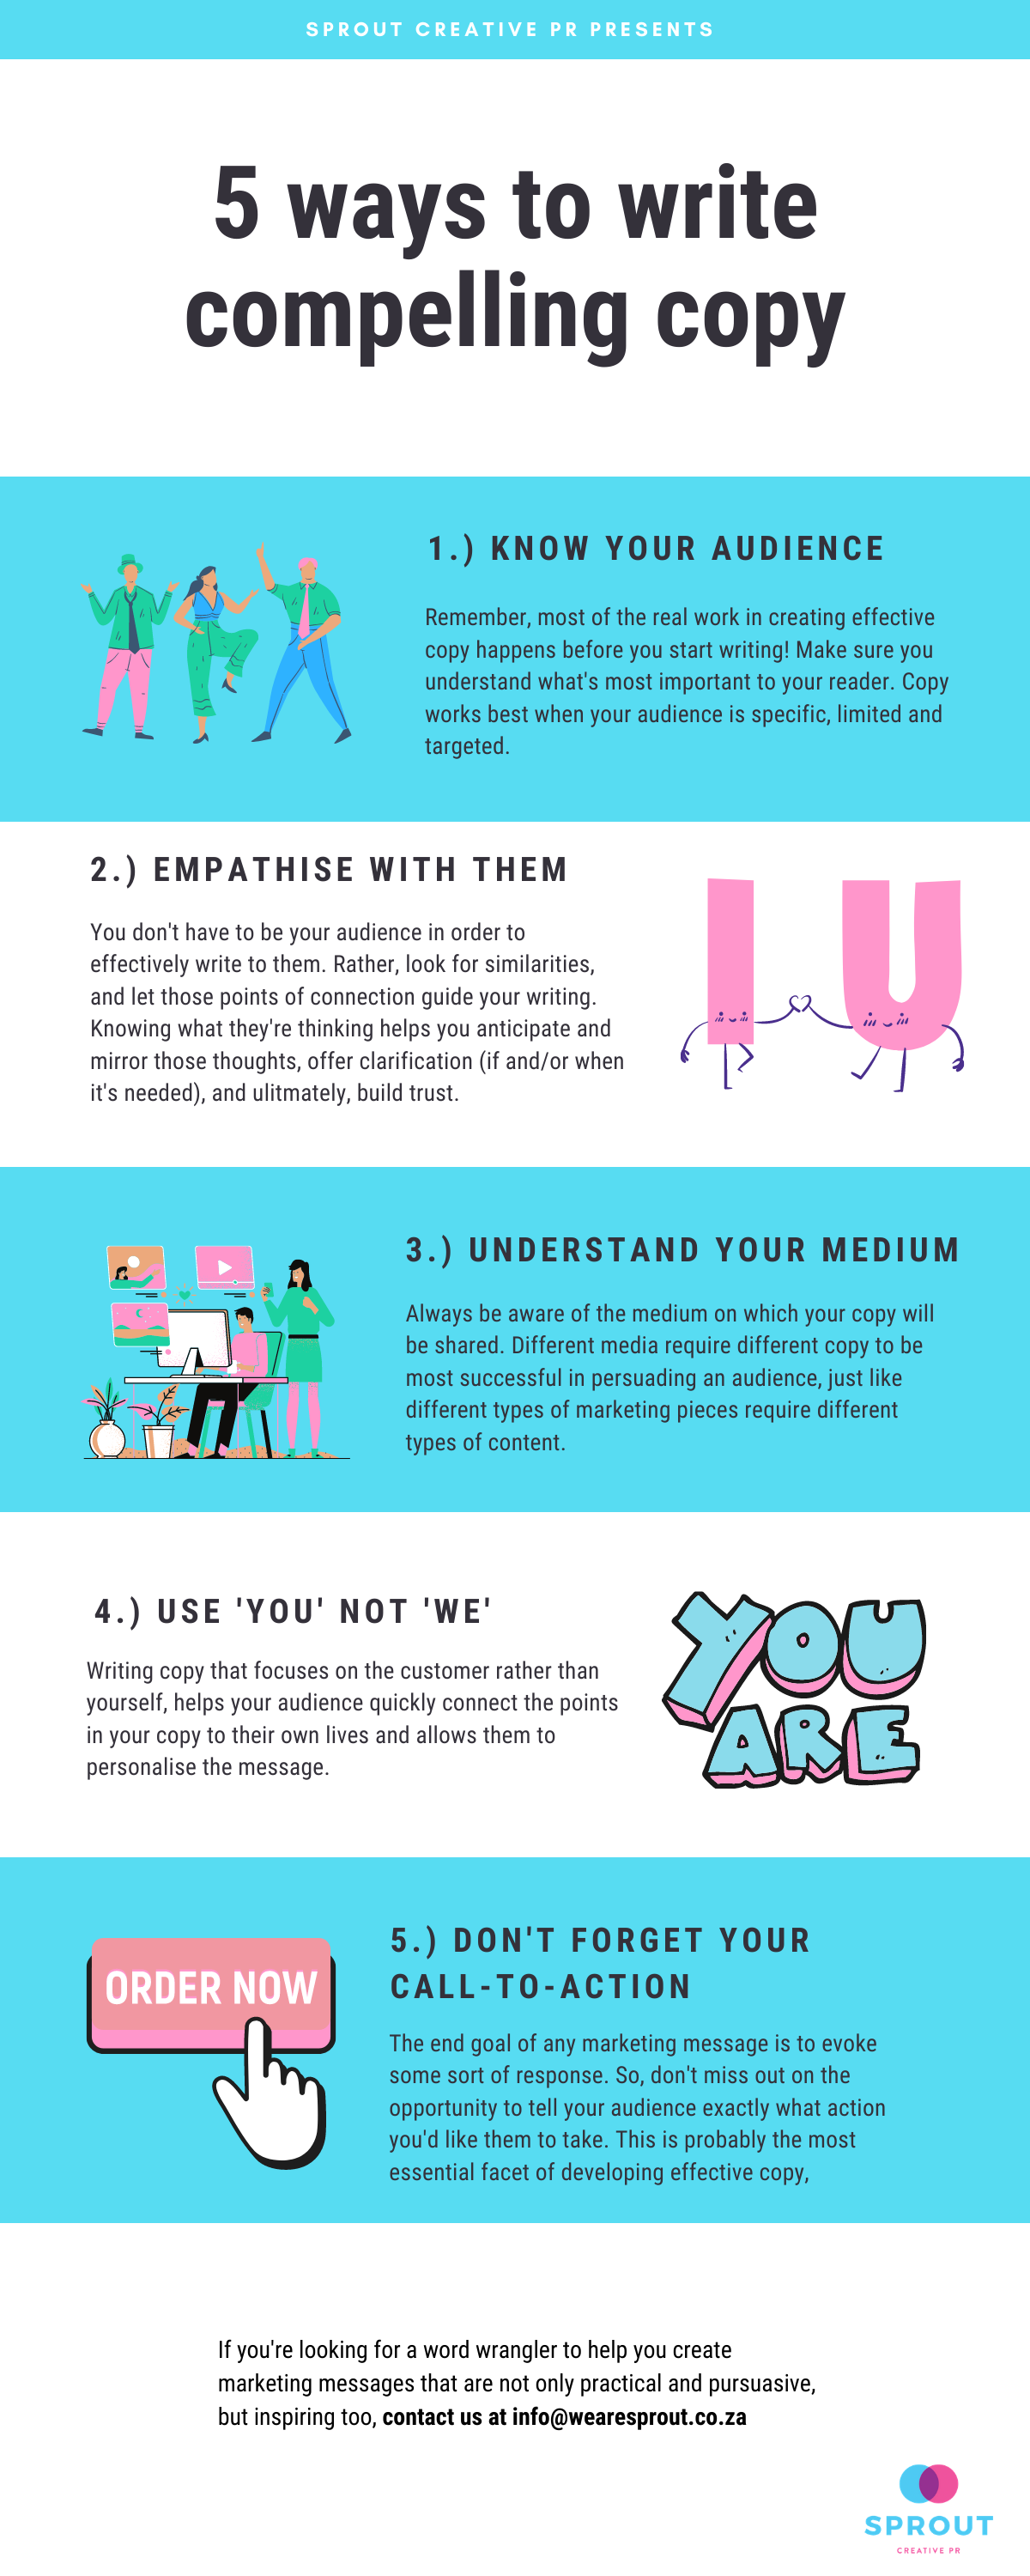 Five ways to write compelling copy - an infographic by Sprout Creative PR